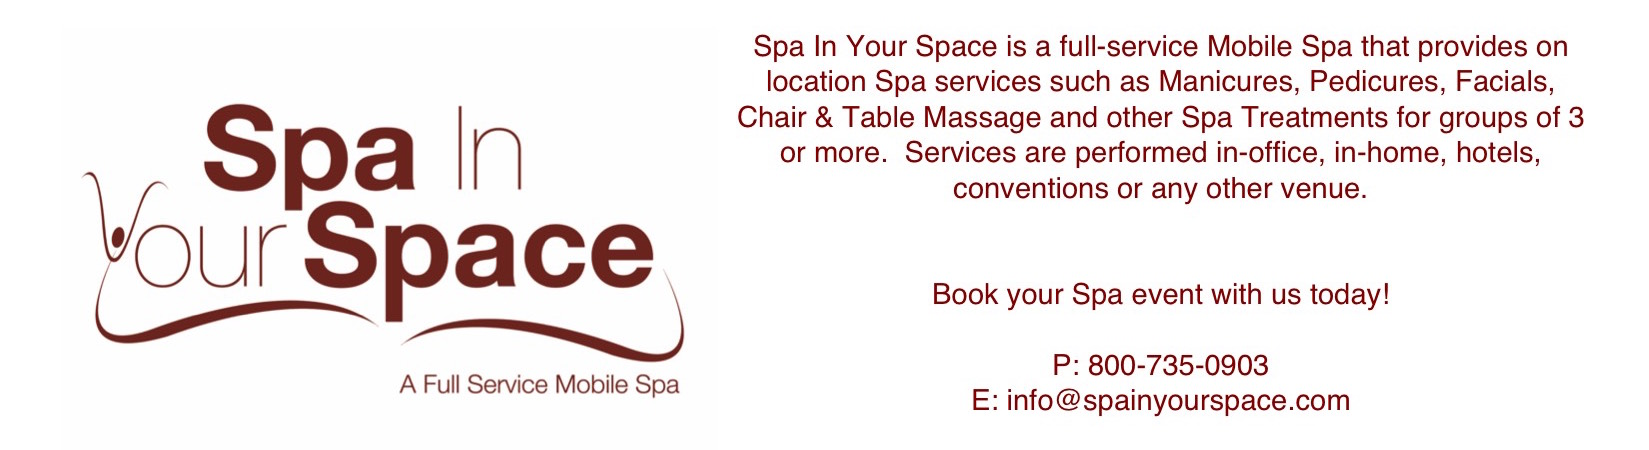 """Bringing Unique Spa Experiences to Your Location"""